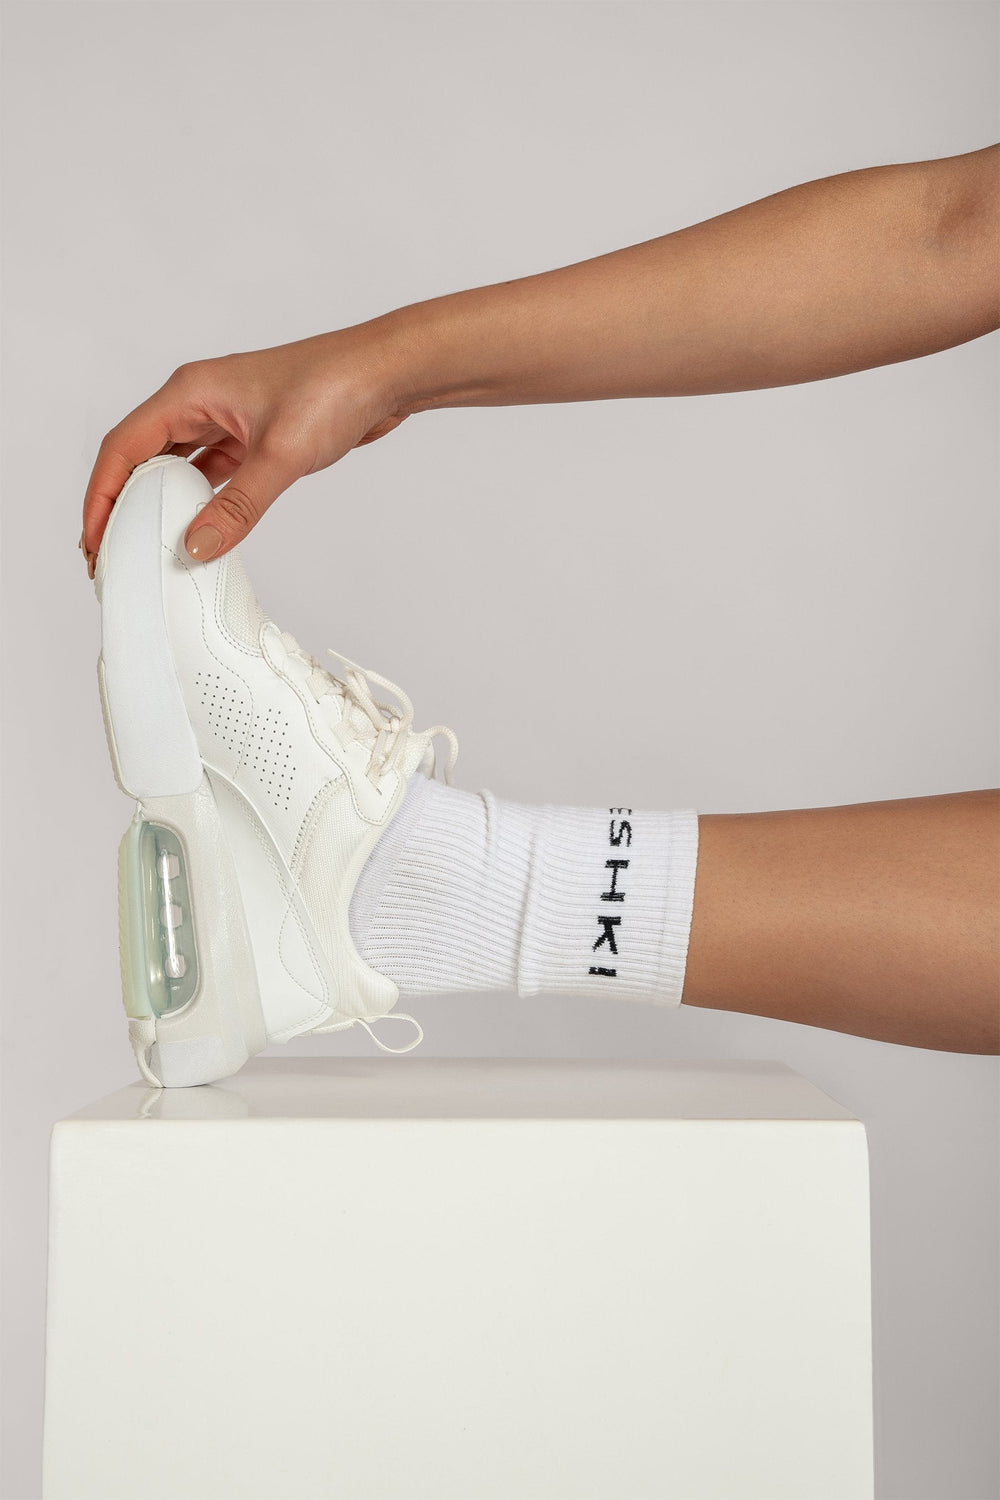 Meshki Branded Socks - White - MESHKI ?id=16083483164747